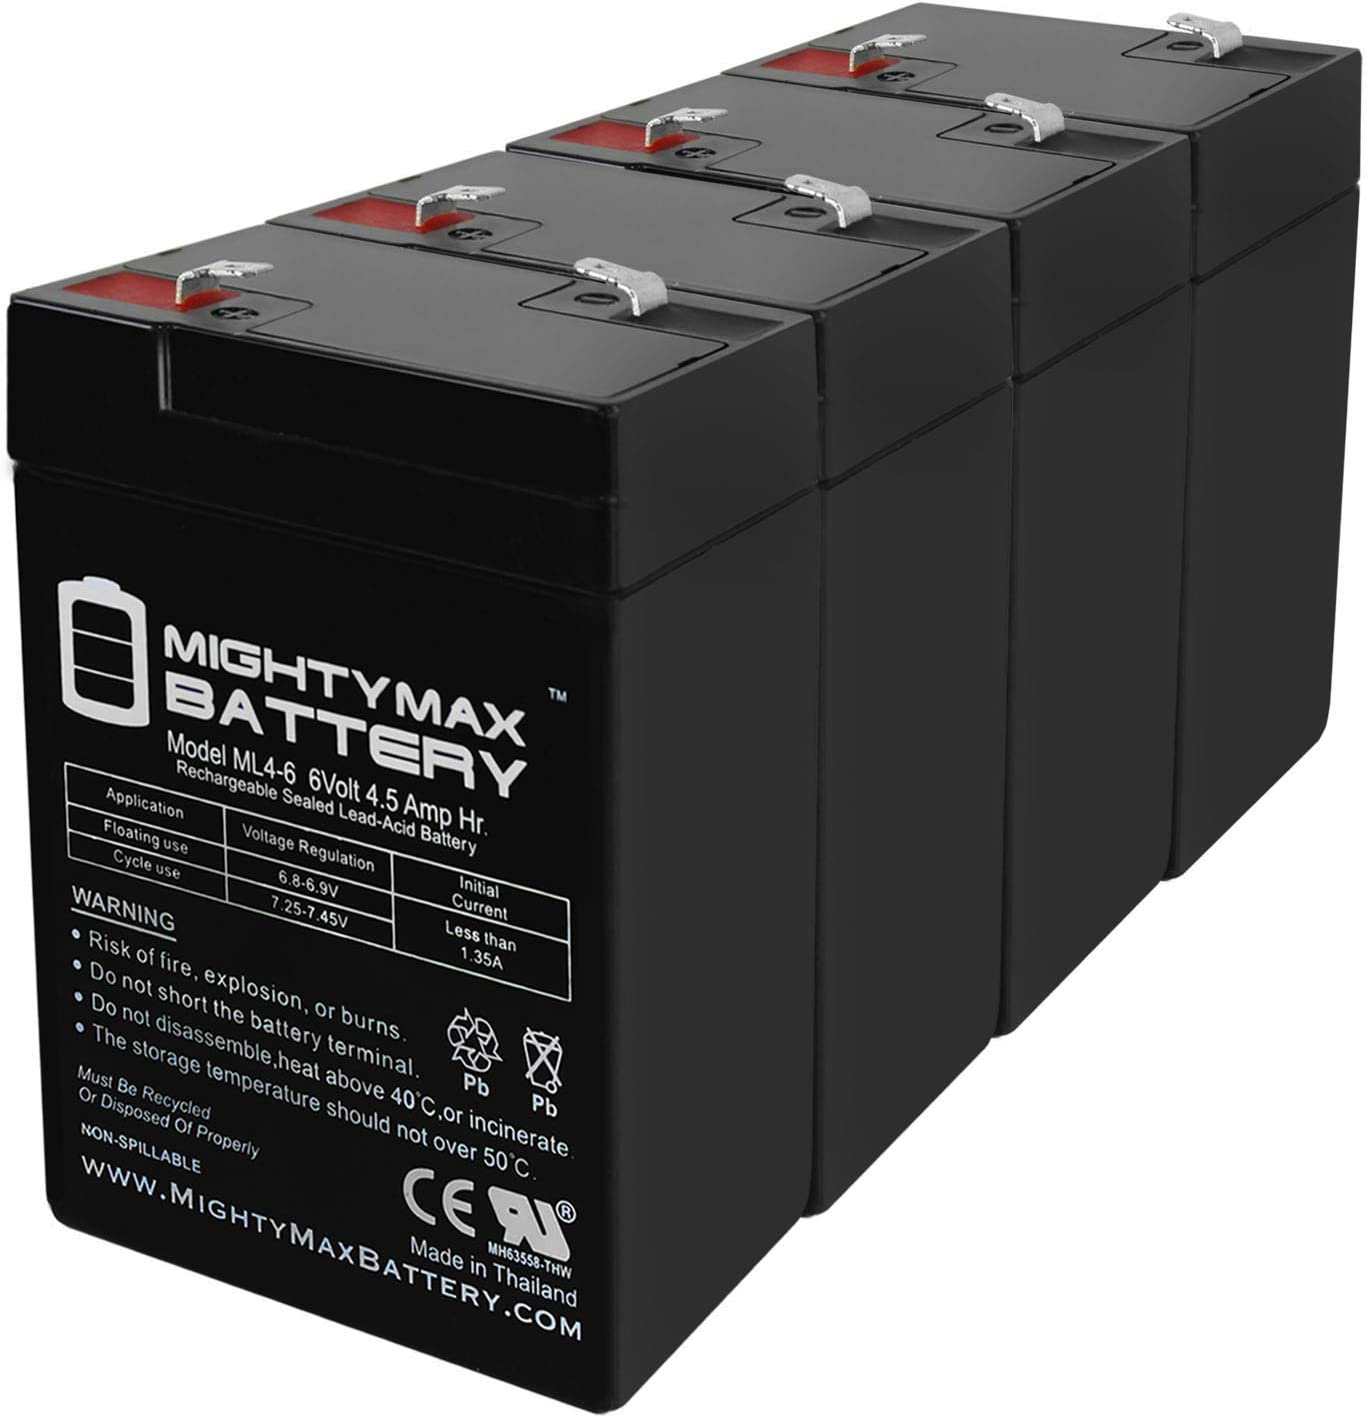 Sale price Mighty Max Battery 6V 4.5AH Ranking TOP3 Replacement IT-YB CA645 for